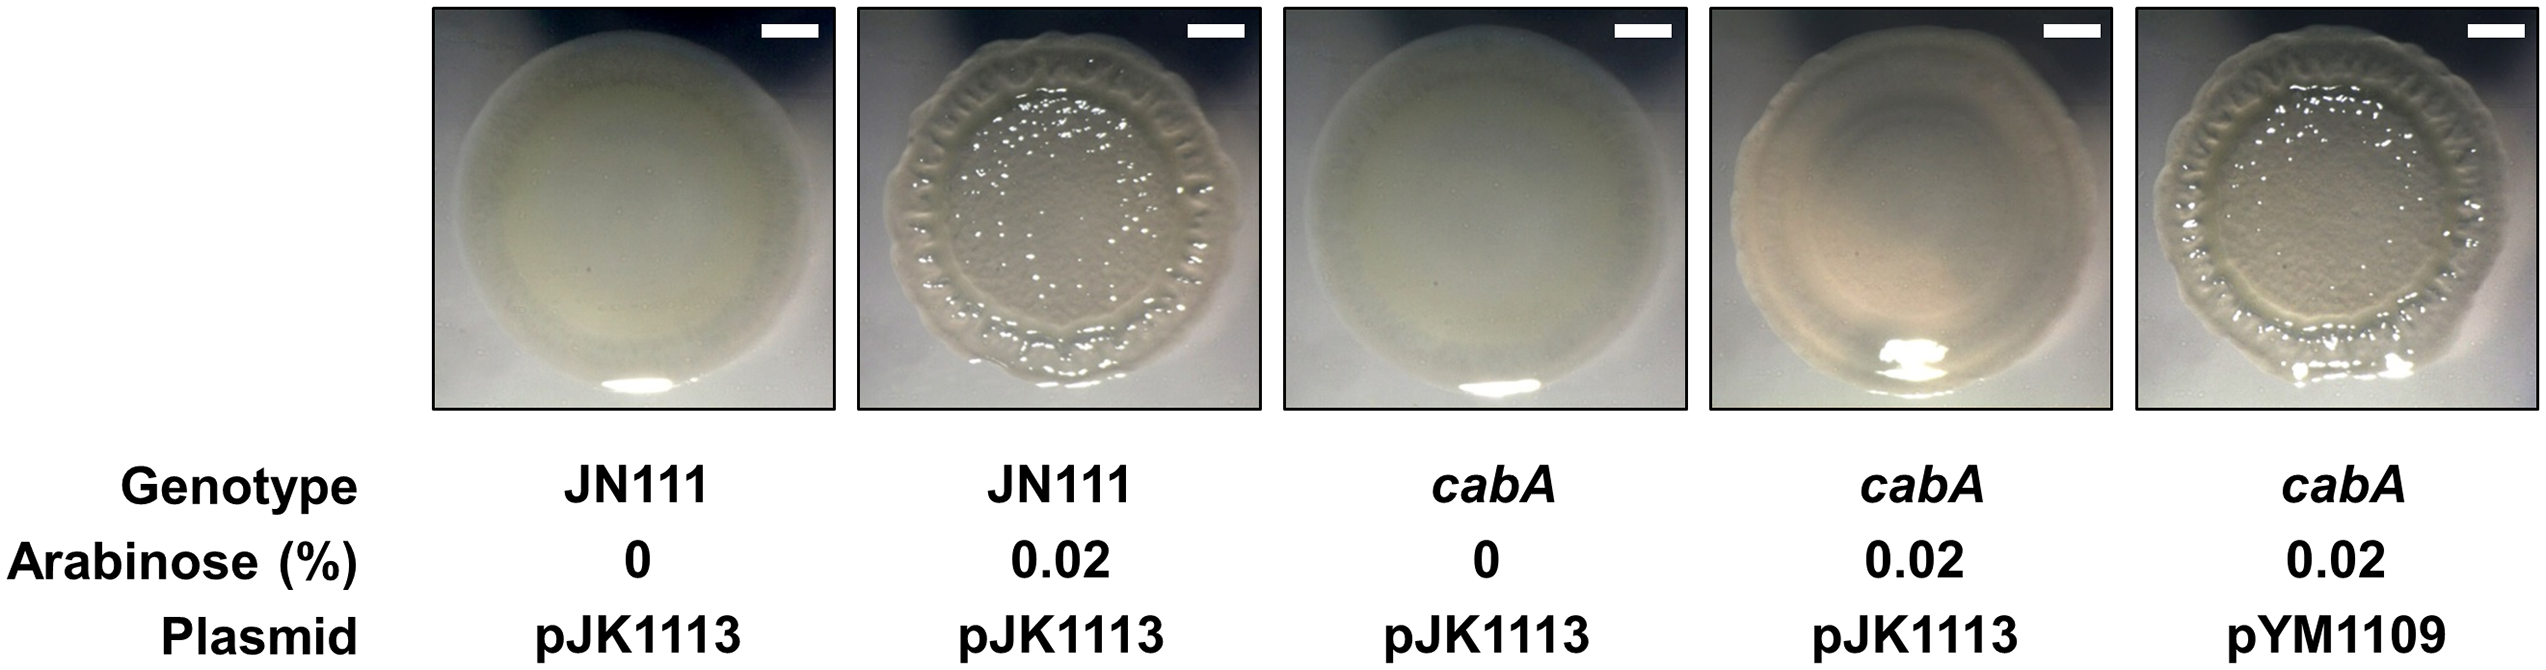 Effects of the <i>cabA</i> mutation on colony morphology.